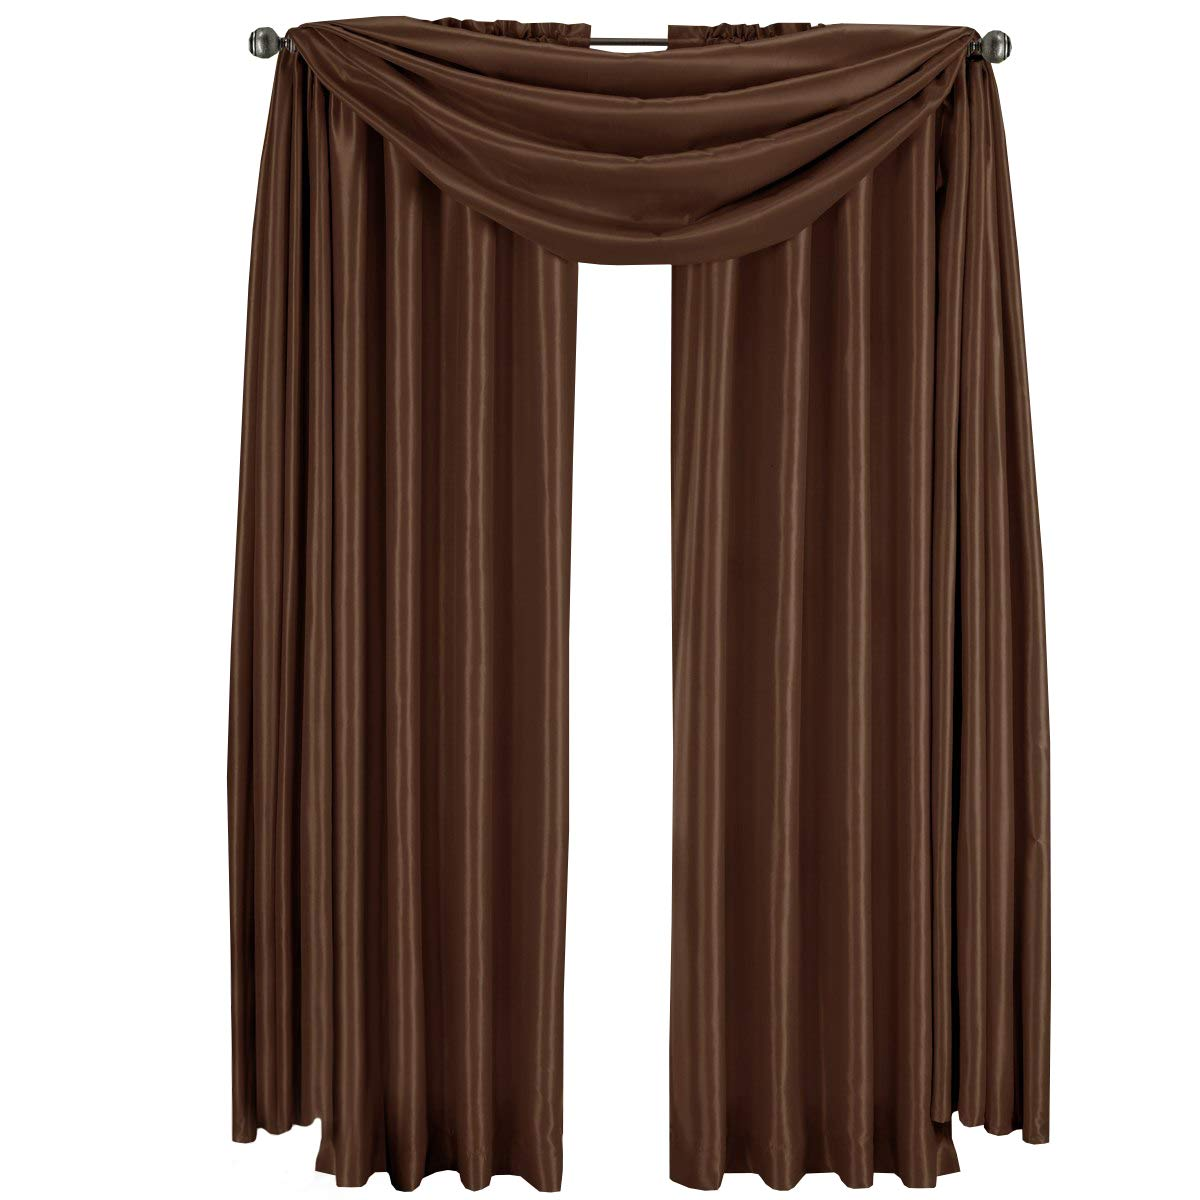 Royal Hotel Luxury Soho Chocolate-Brown Rod Pocket Window Curtain Drape, Solid Pattern, 42x108 inches